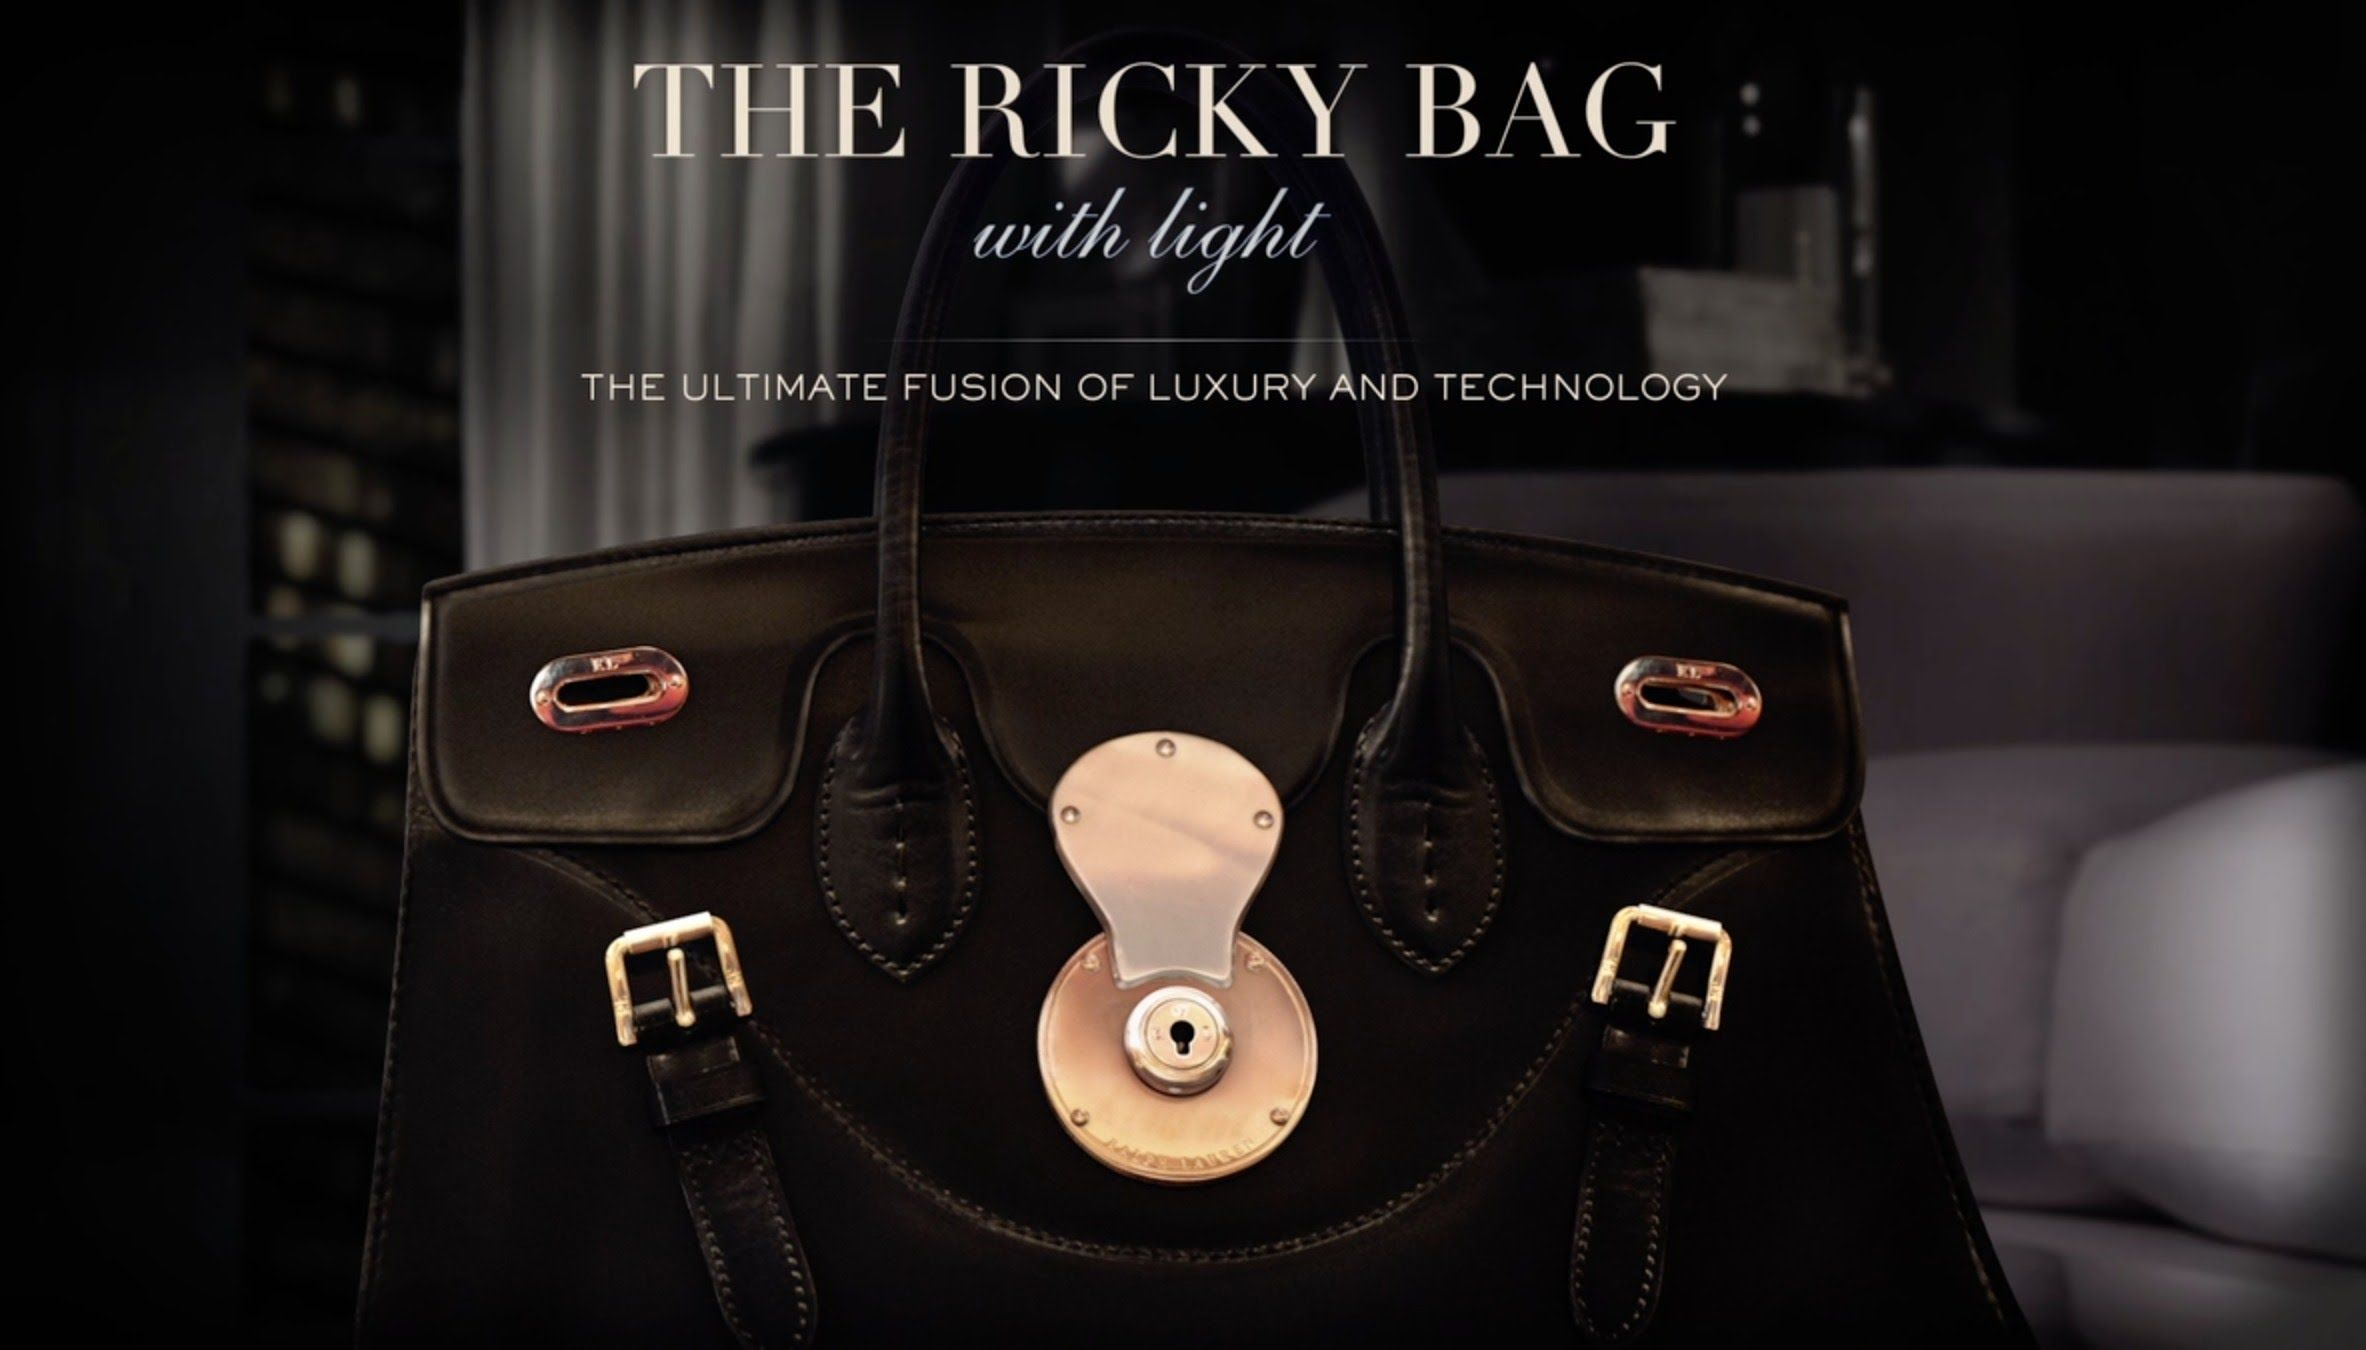 The Ralph Lauren Ricky with Light is now available for pre-order. It is 7bd05228b16cd